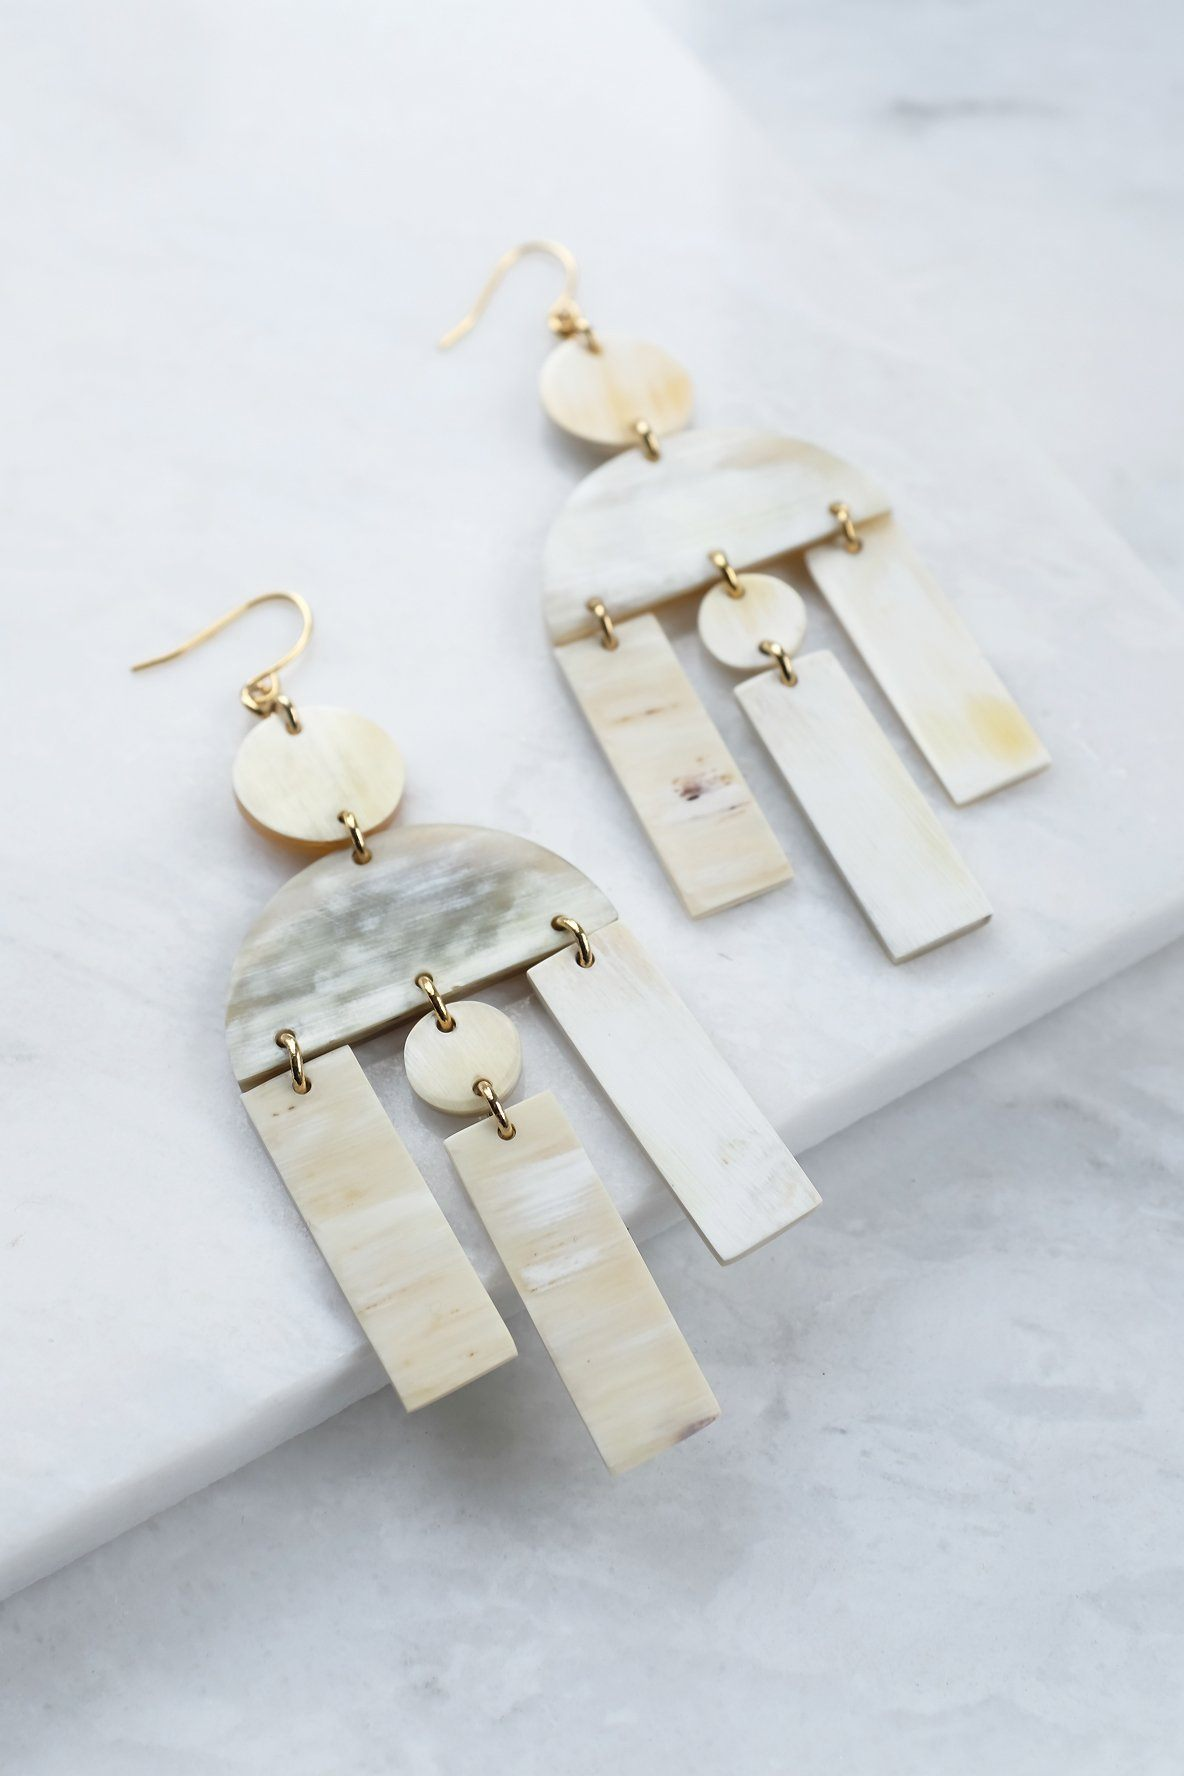 Hoang Hau 16K Gold-Plated Brass Buffalo Horn Geometric Statement Earrings - Handcrafted & Unique Buffalo Horn Jewelry